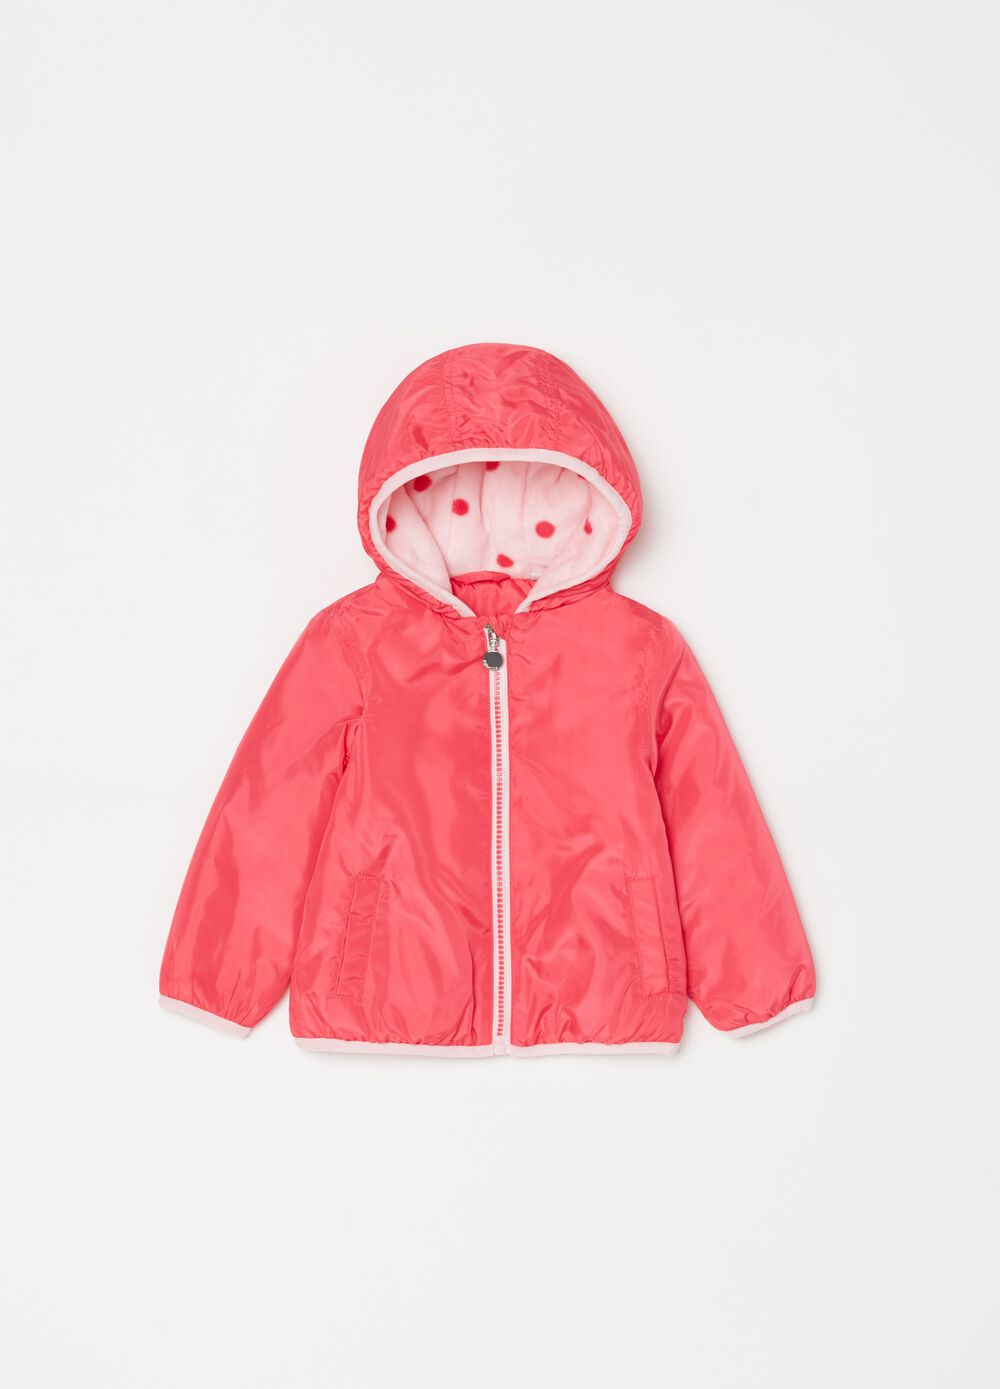 Lightweight jacket with hood and pockets